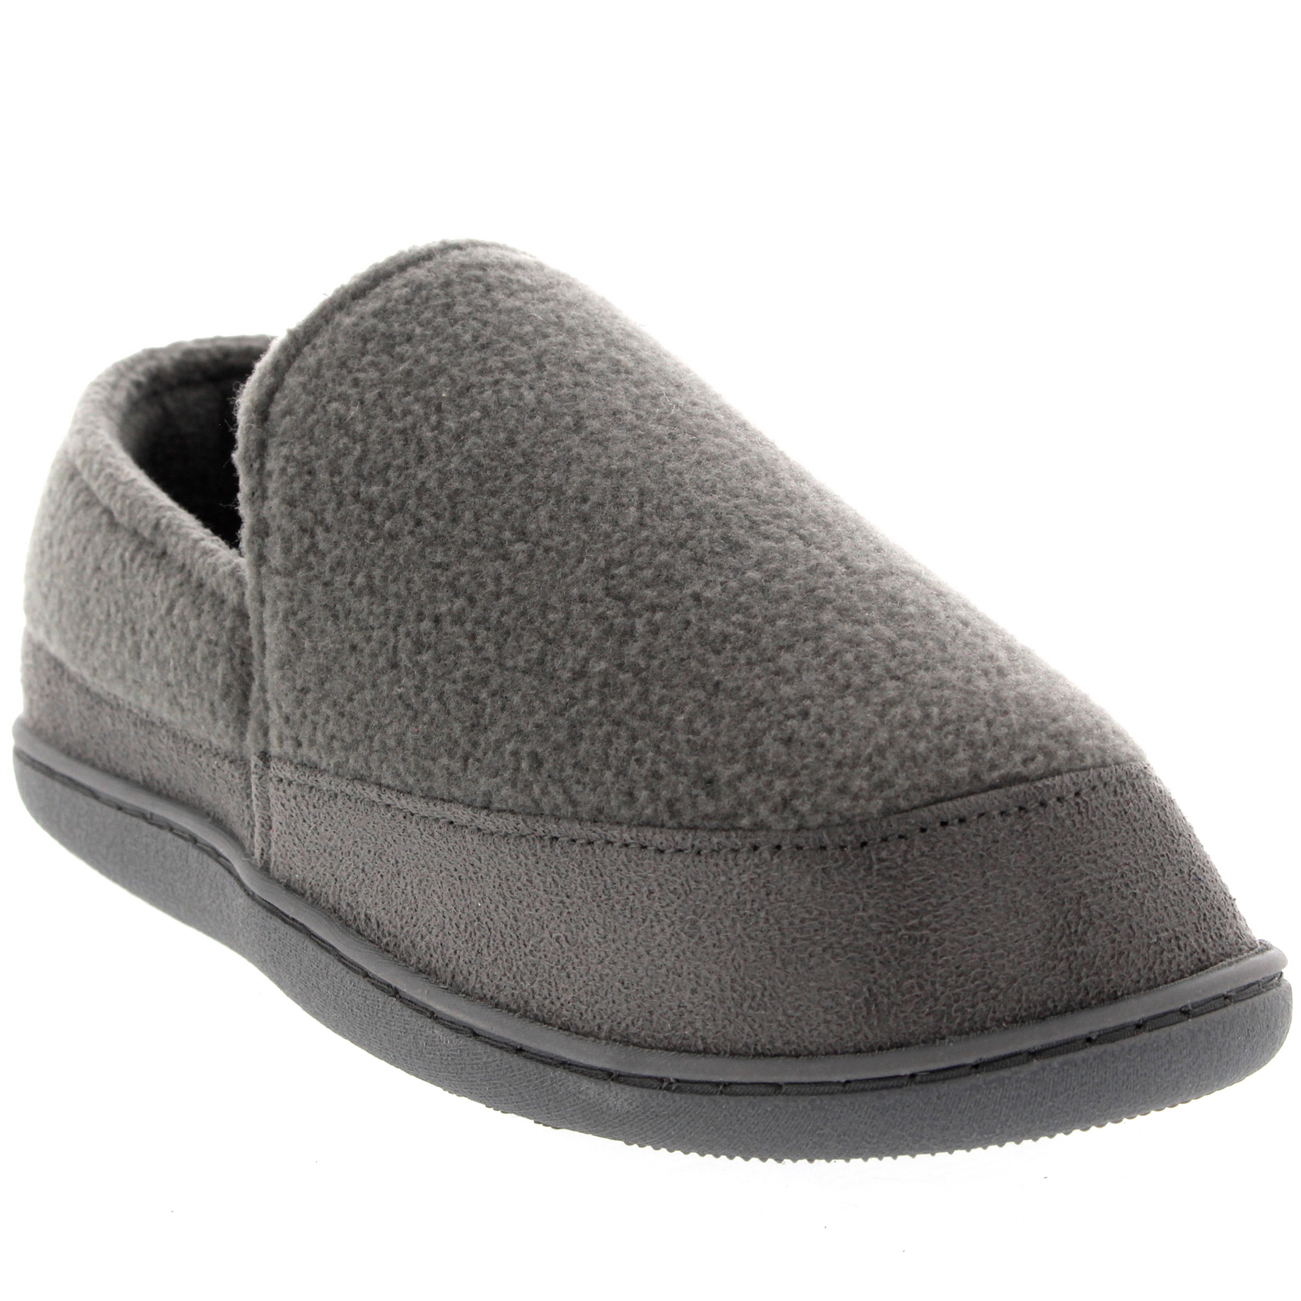 Womens Fur Covered Slip On Comfy House Winter Fur Lined ...